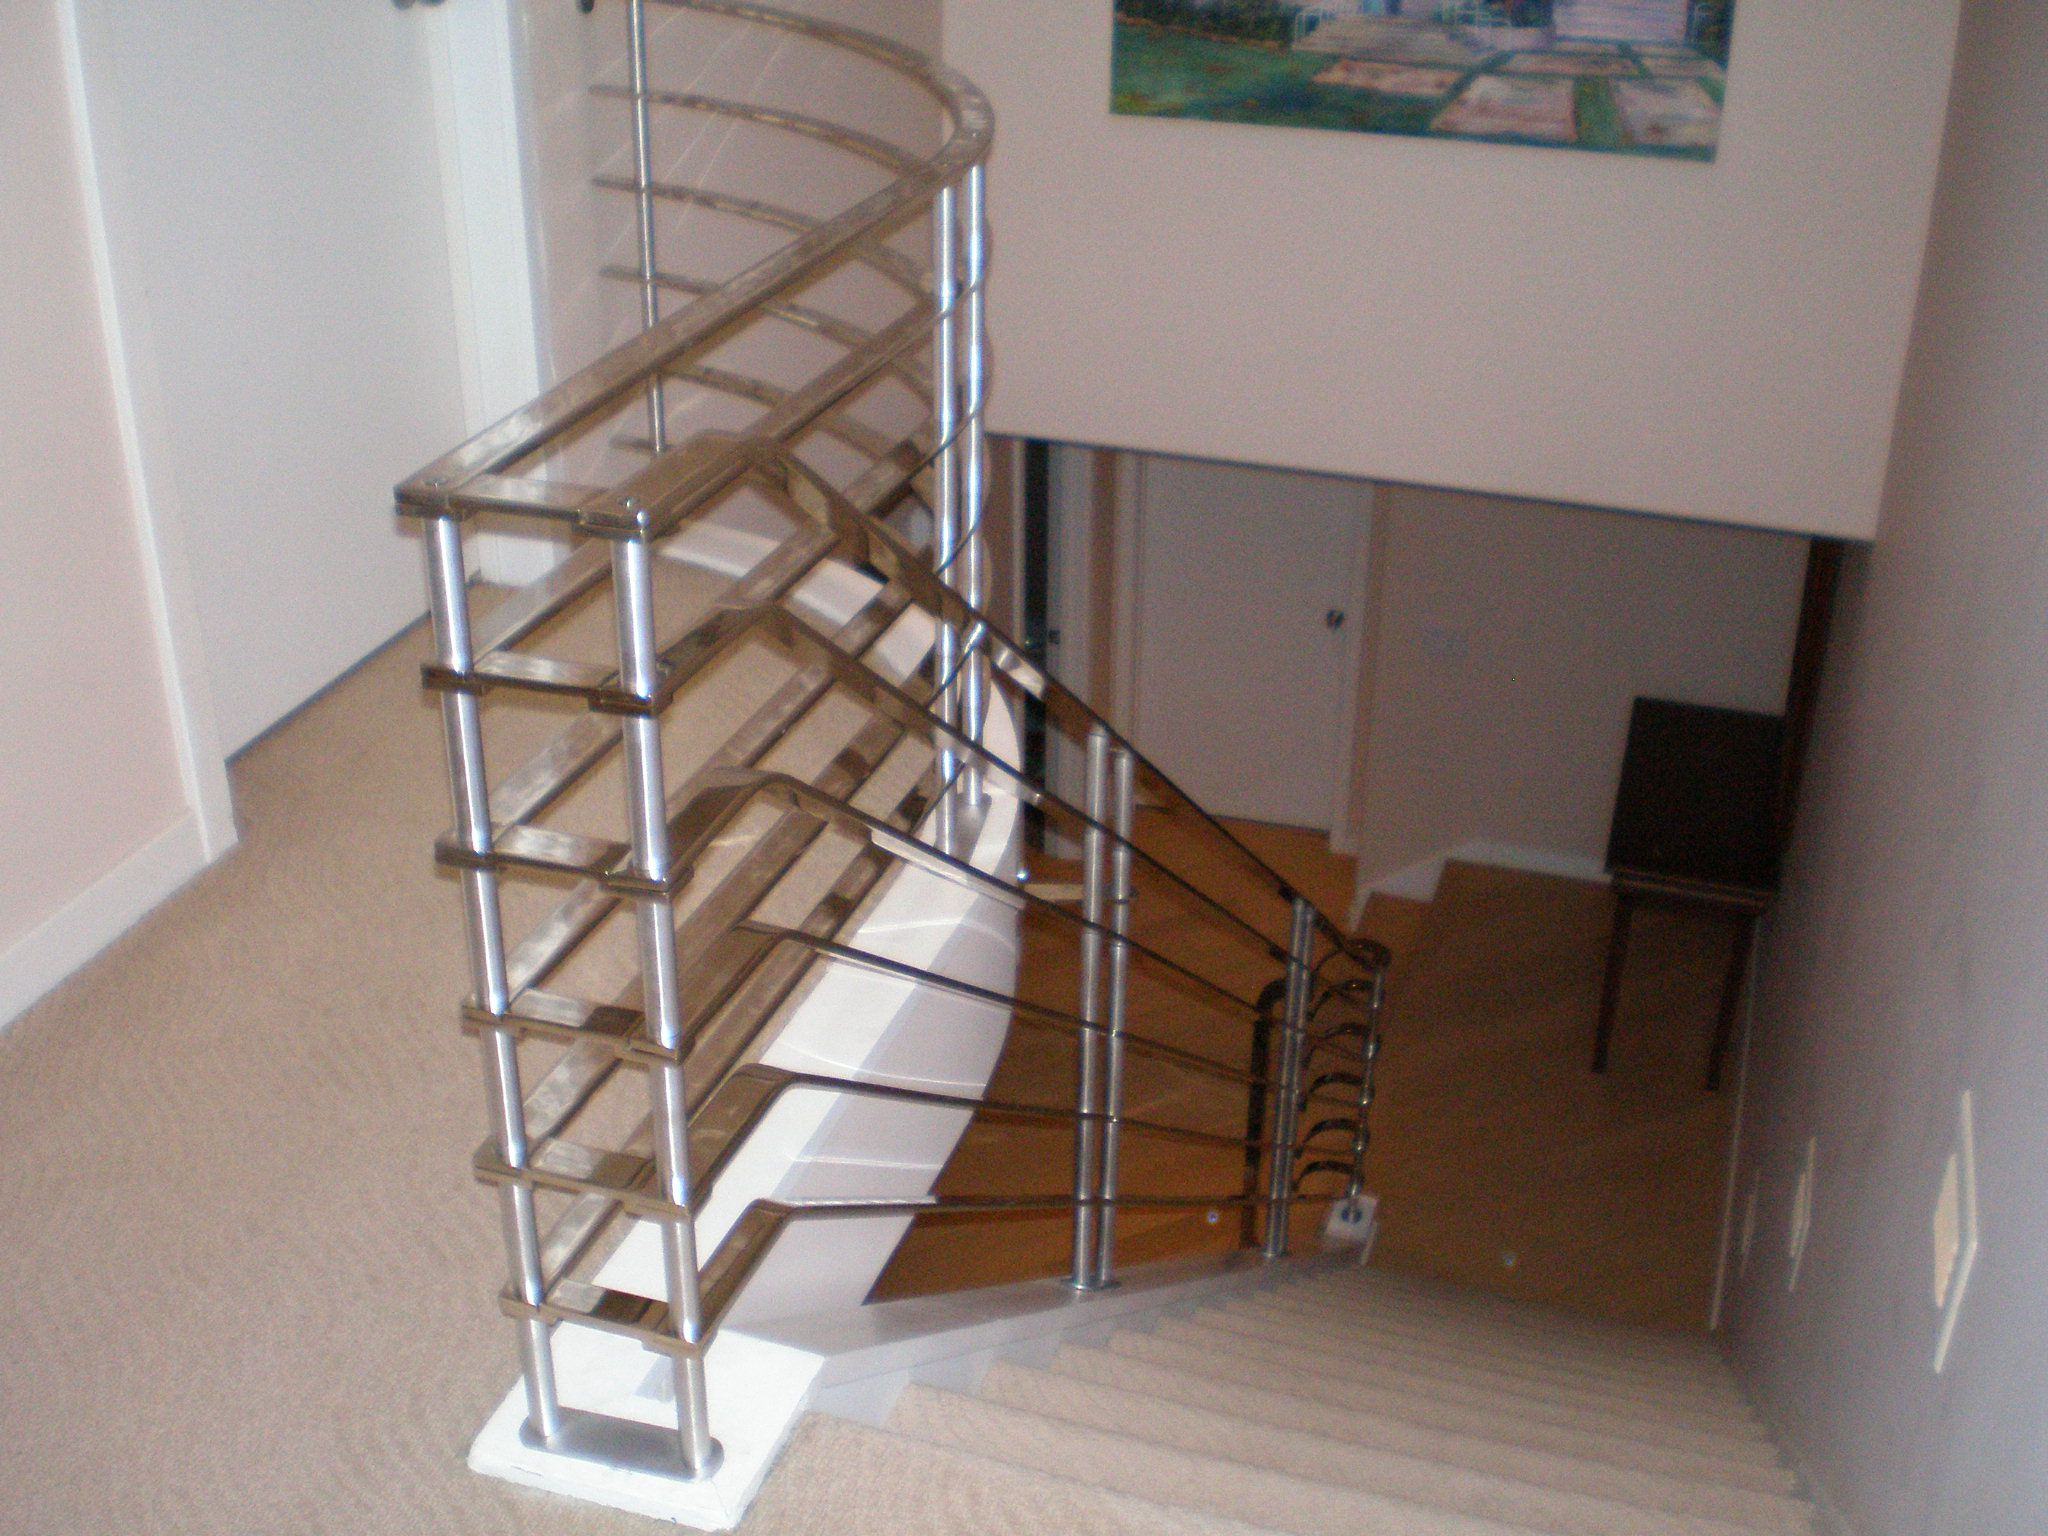 Best Chrome Plated Stair Railing Art Deco Fabulousness Jmr 640 x 480